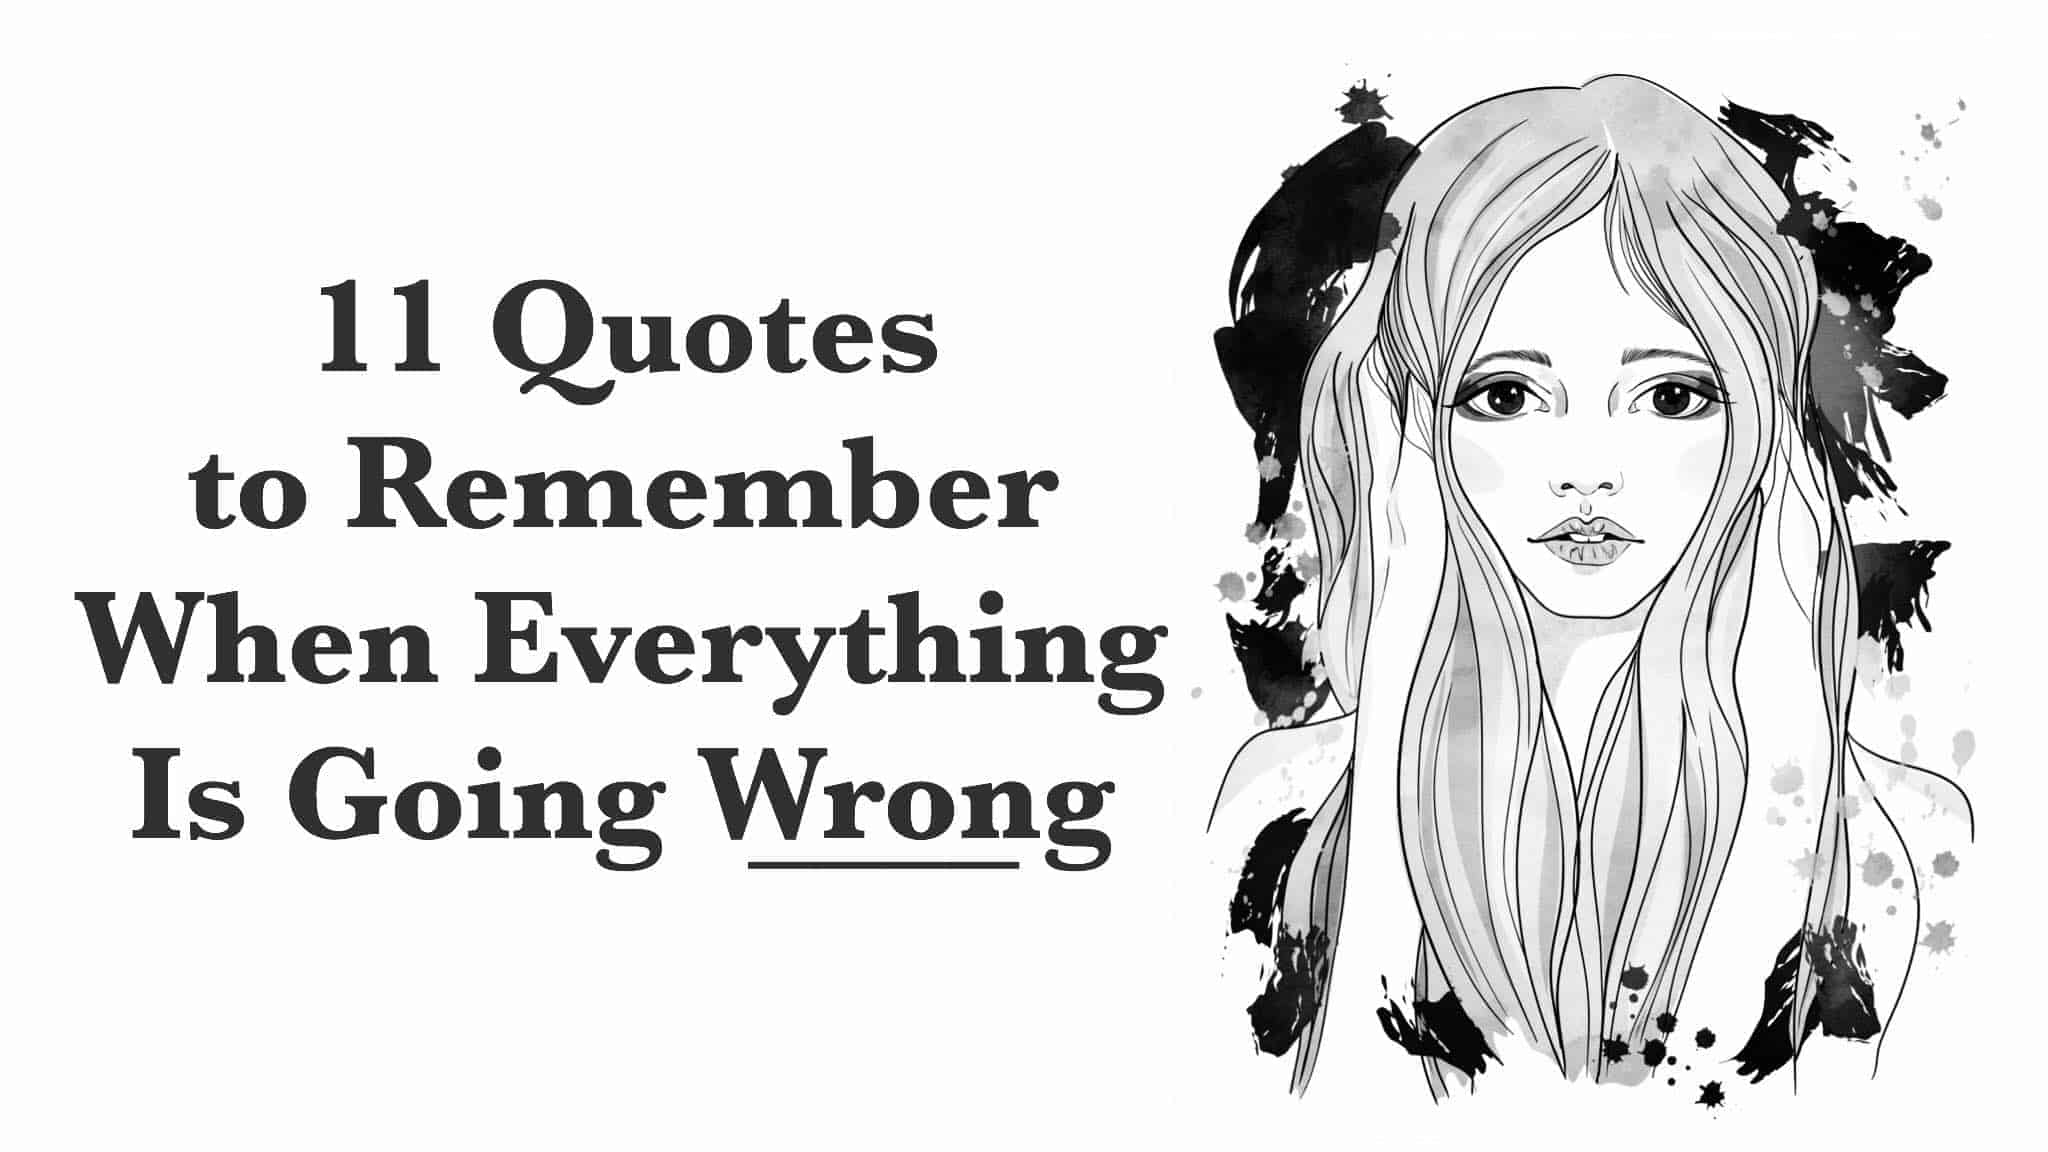 11 Quotes To Remember When Everything Is Going Wrong